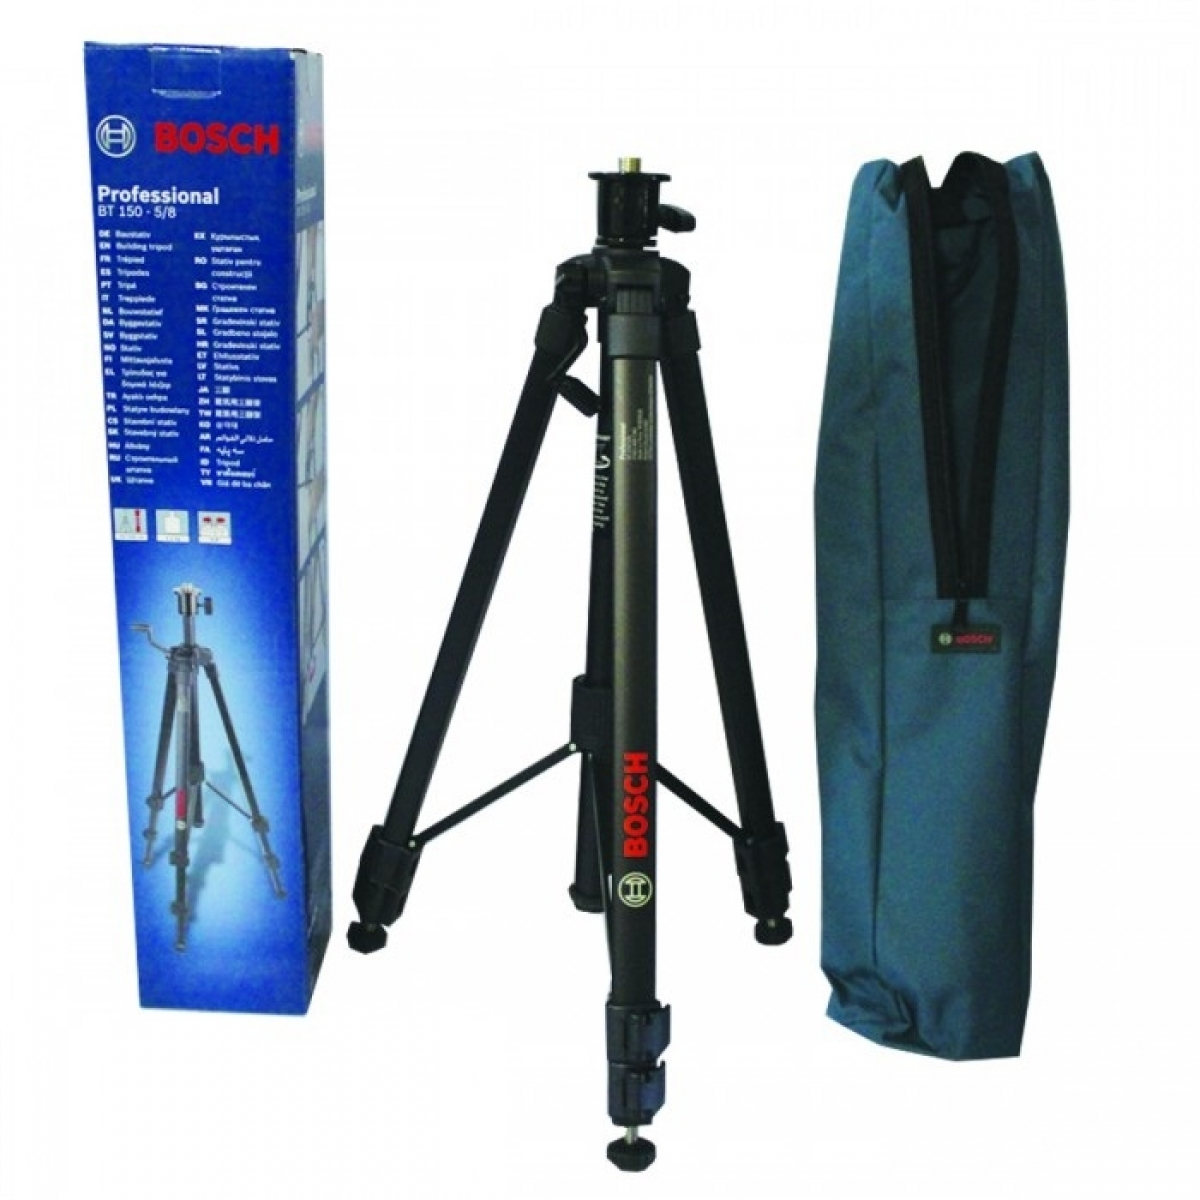 bosch bt 150 5 8 building tripod stand my power tools. Black Bedroom Furniture Sets. Home Design Ideas